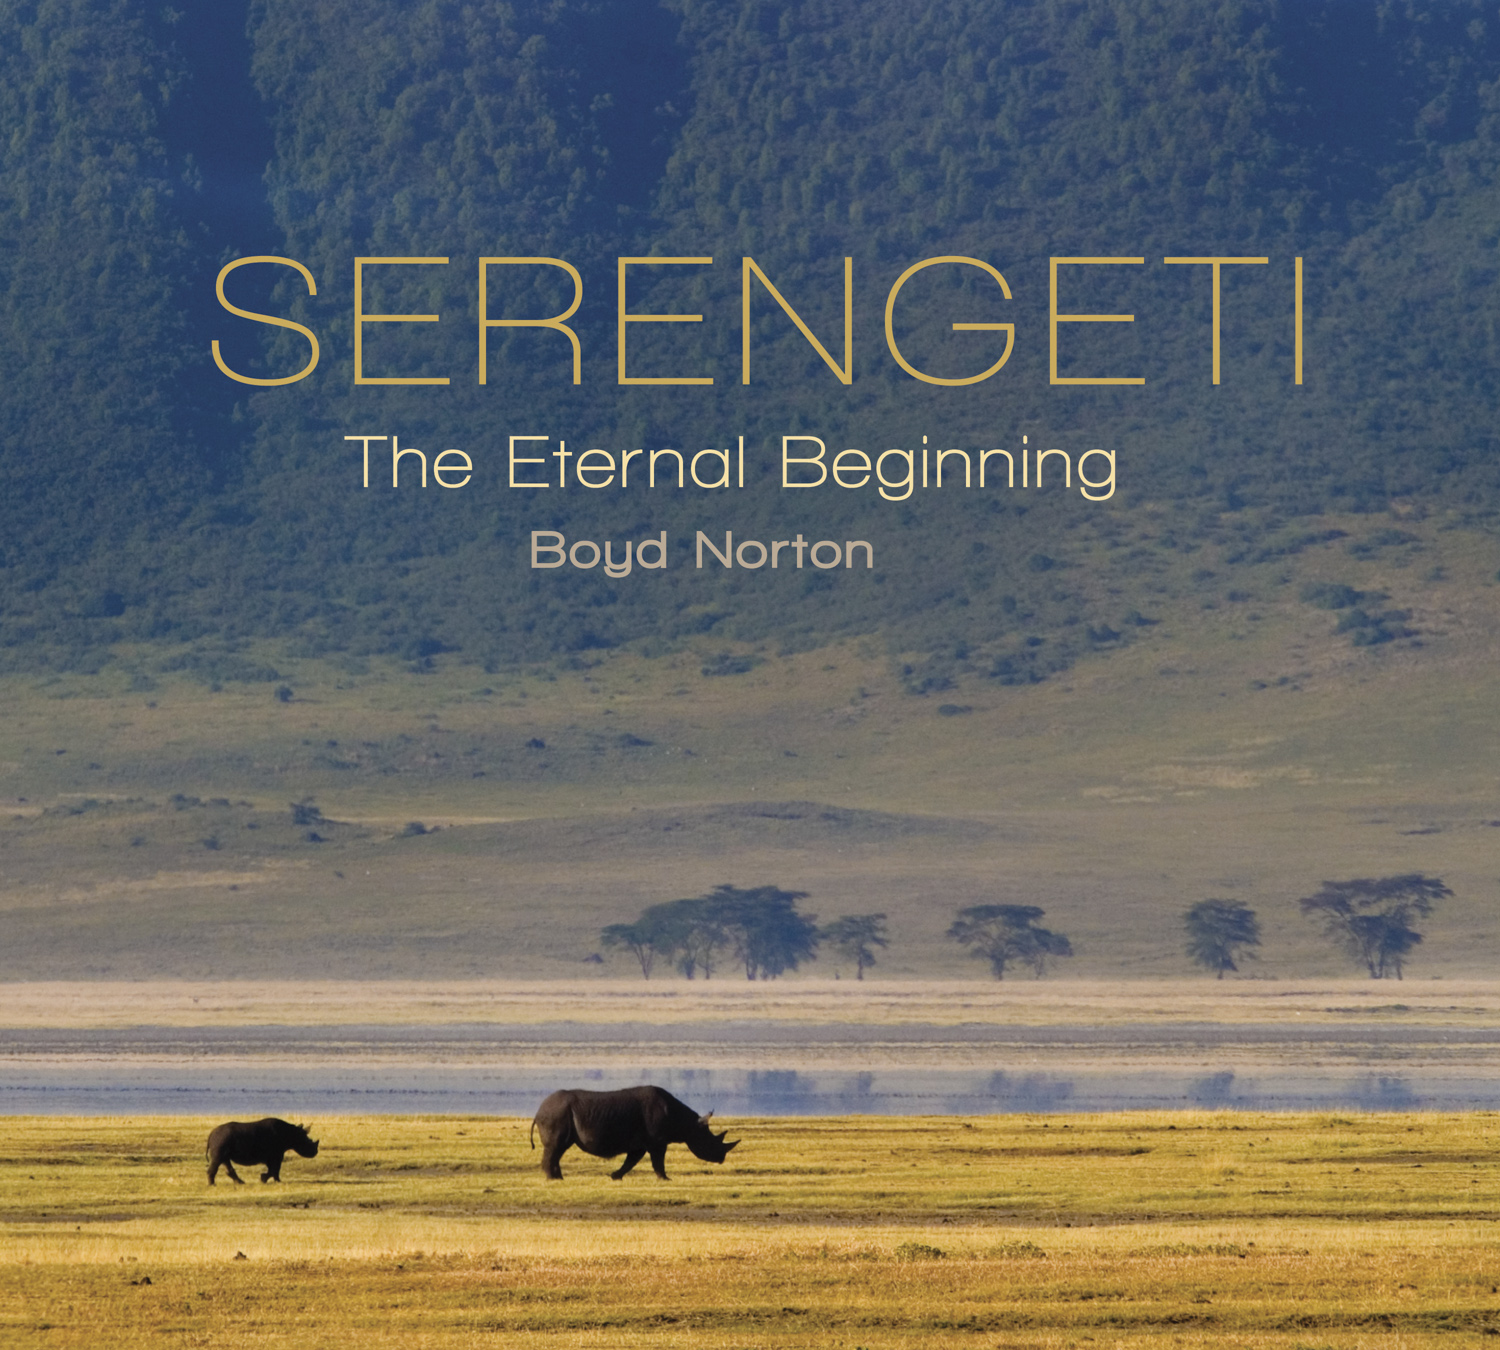 Serengeti book cover.